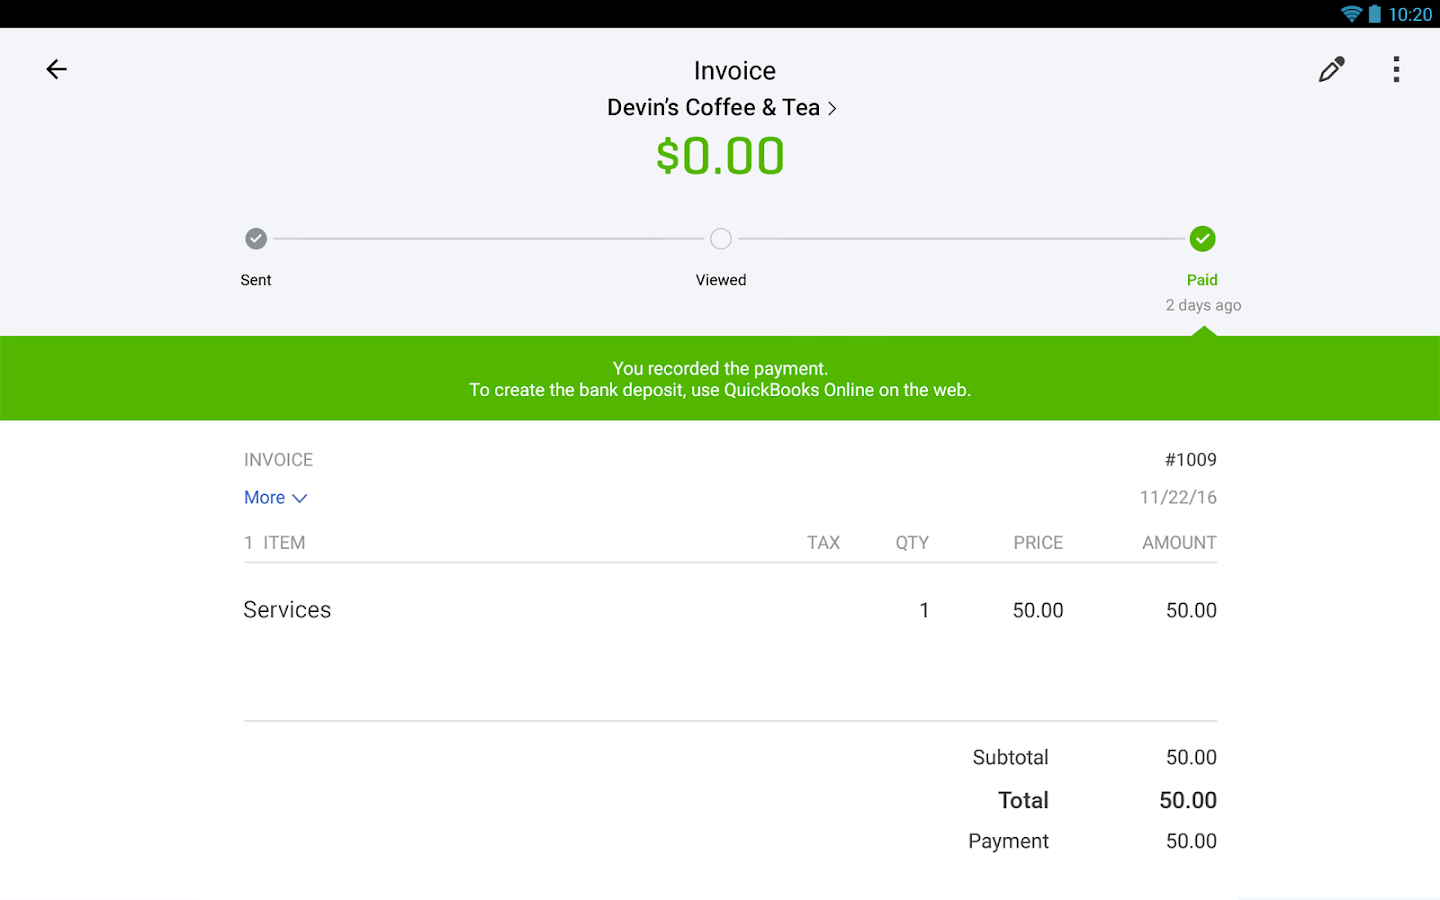 Invoice For Purchase Order Quickbooks Accountinginvoice  Apk Download  Android  Independent Contractor Invoice Sample Word with Consultant Invoice  Quickbooks Accountinginvoice  Screenshot   Neat Receipts Desktop Scanner